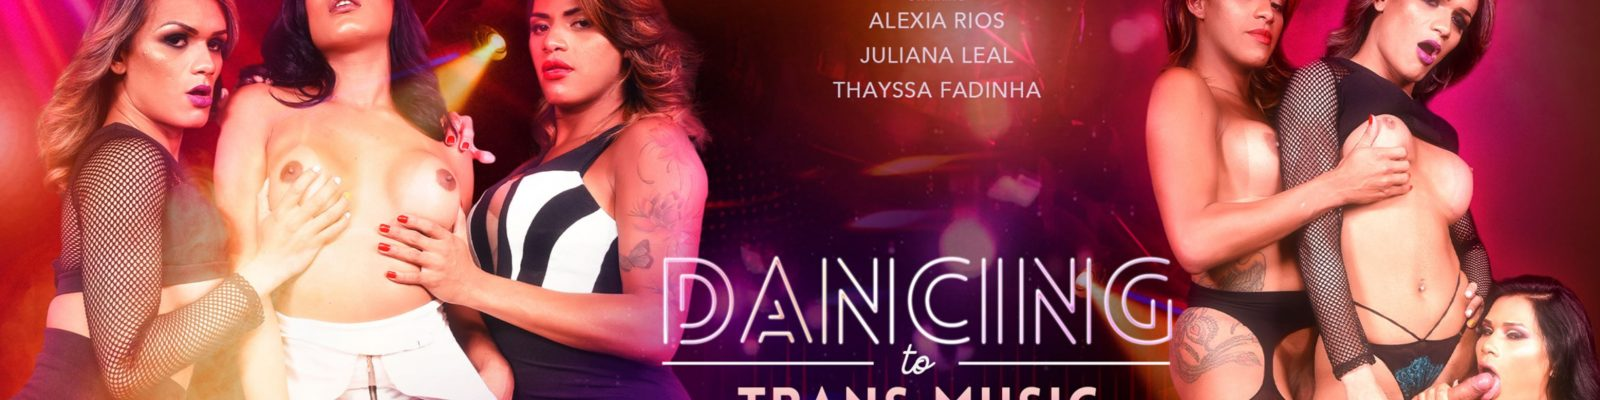 VRB Trans - Dancing To Trans Music ft. Alexia Rios and Juliana Leal